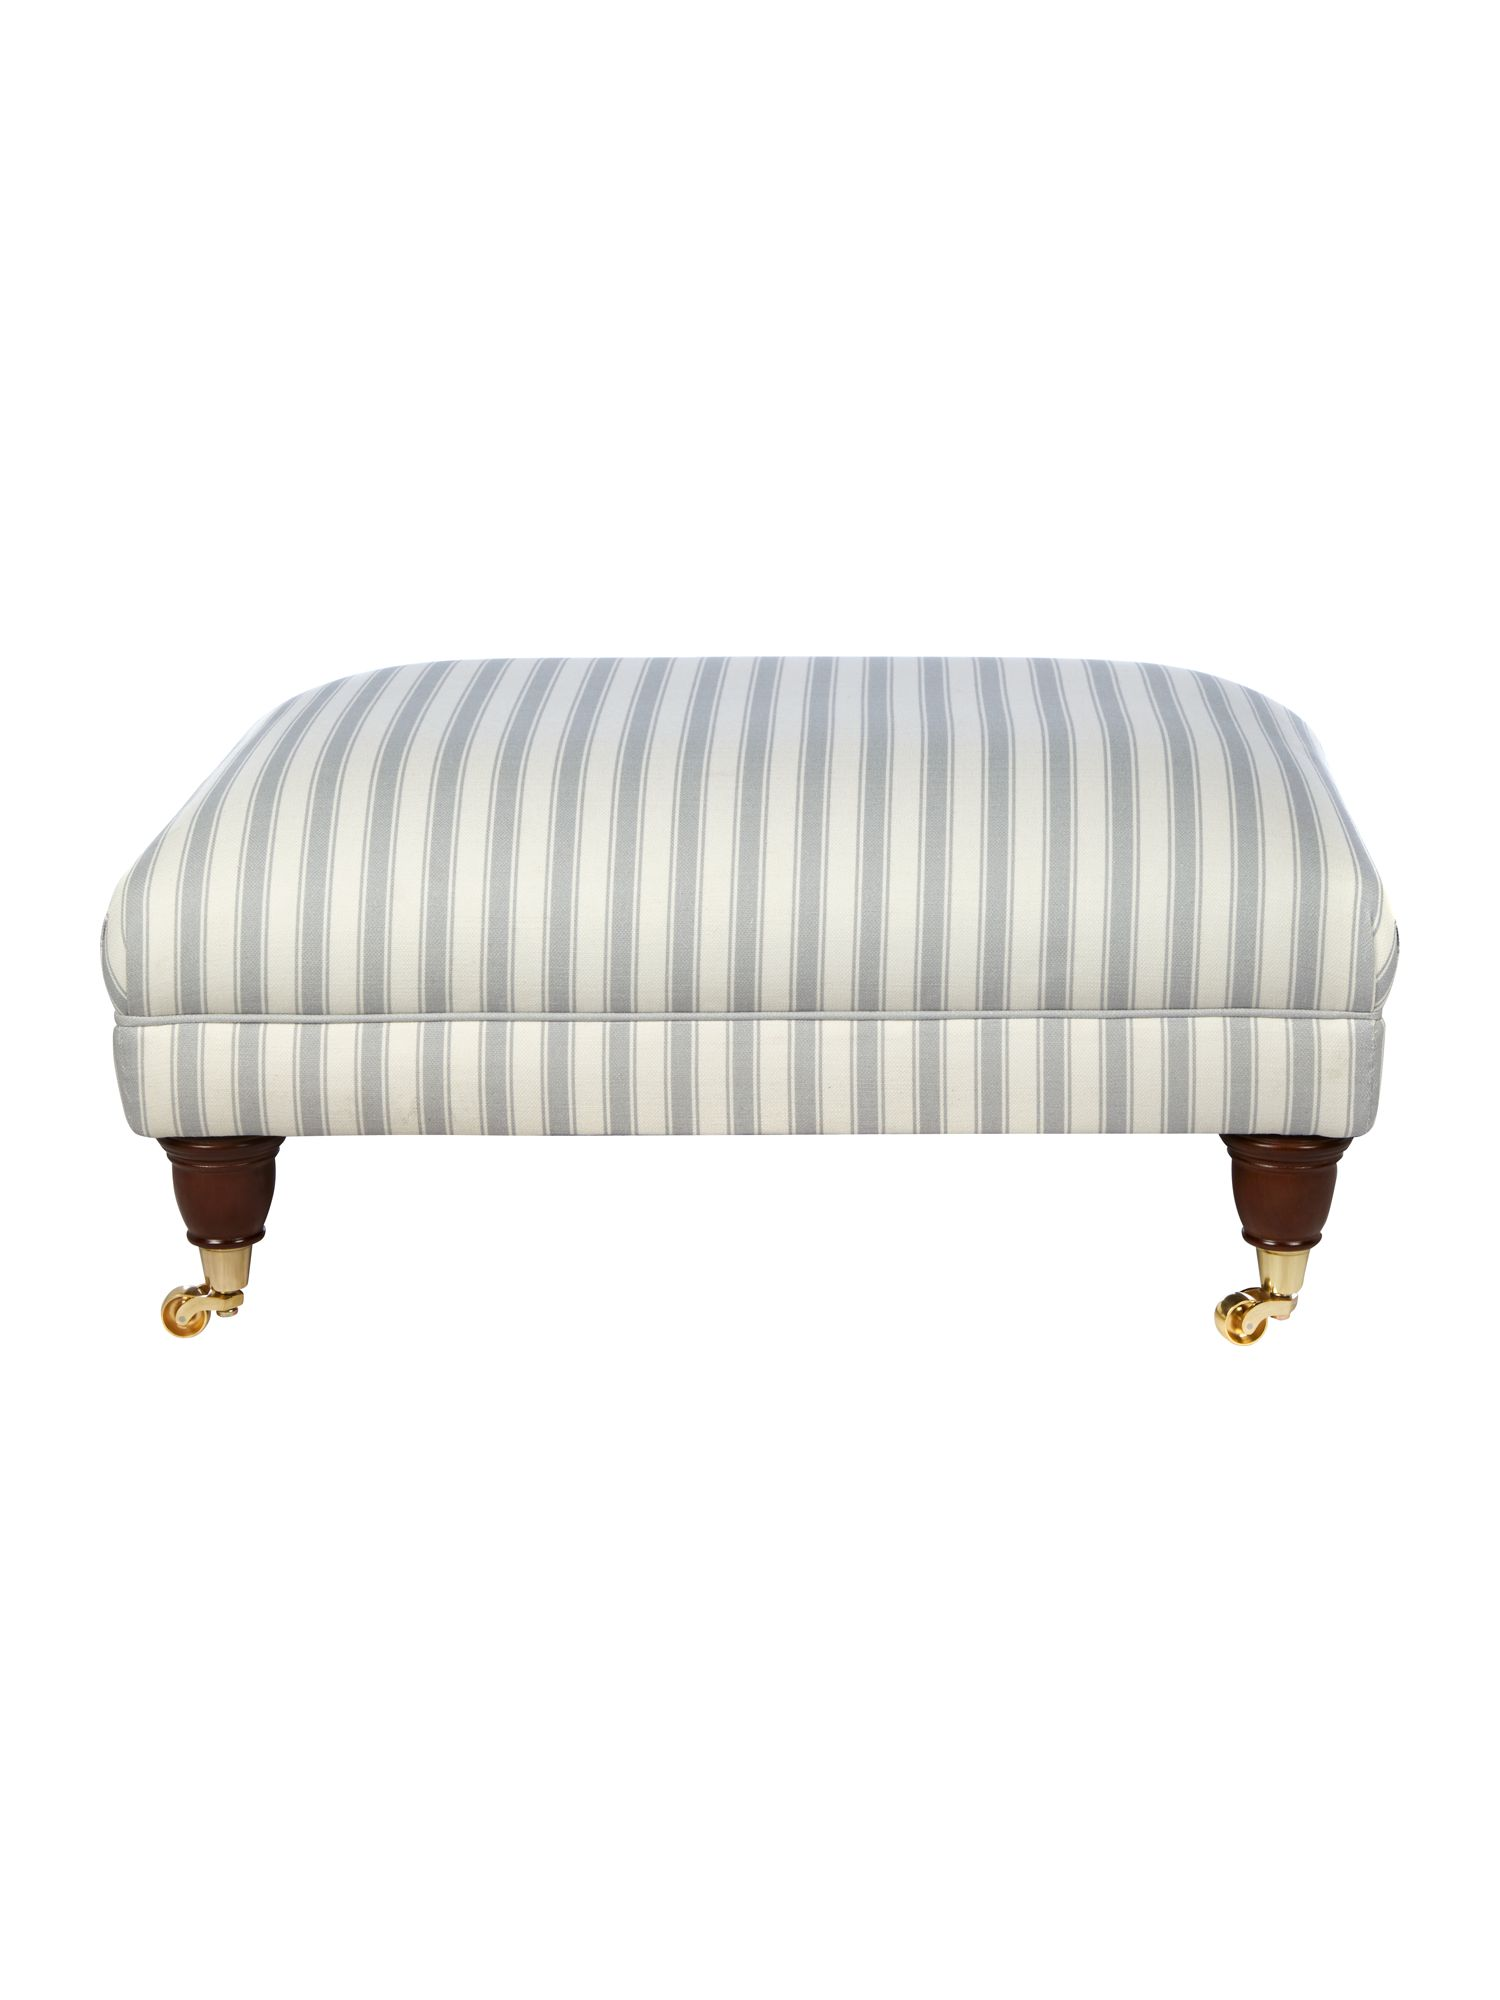 Wiltshire grey stripe banquette stool